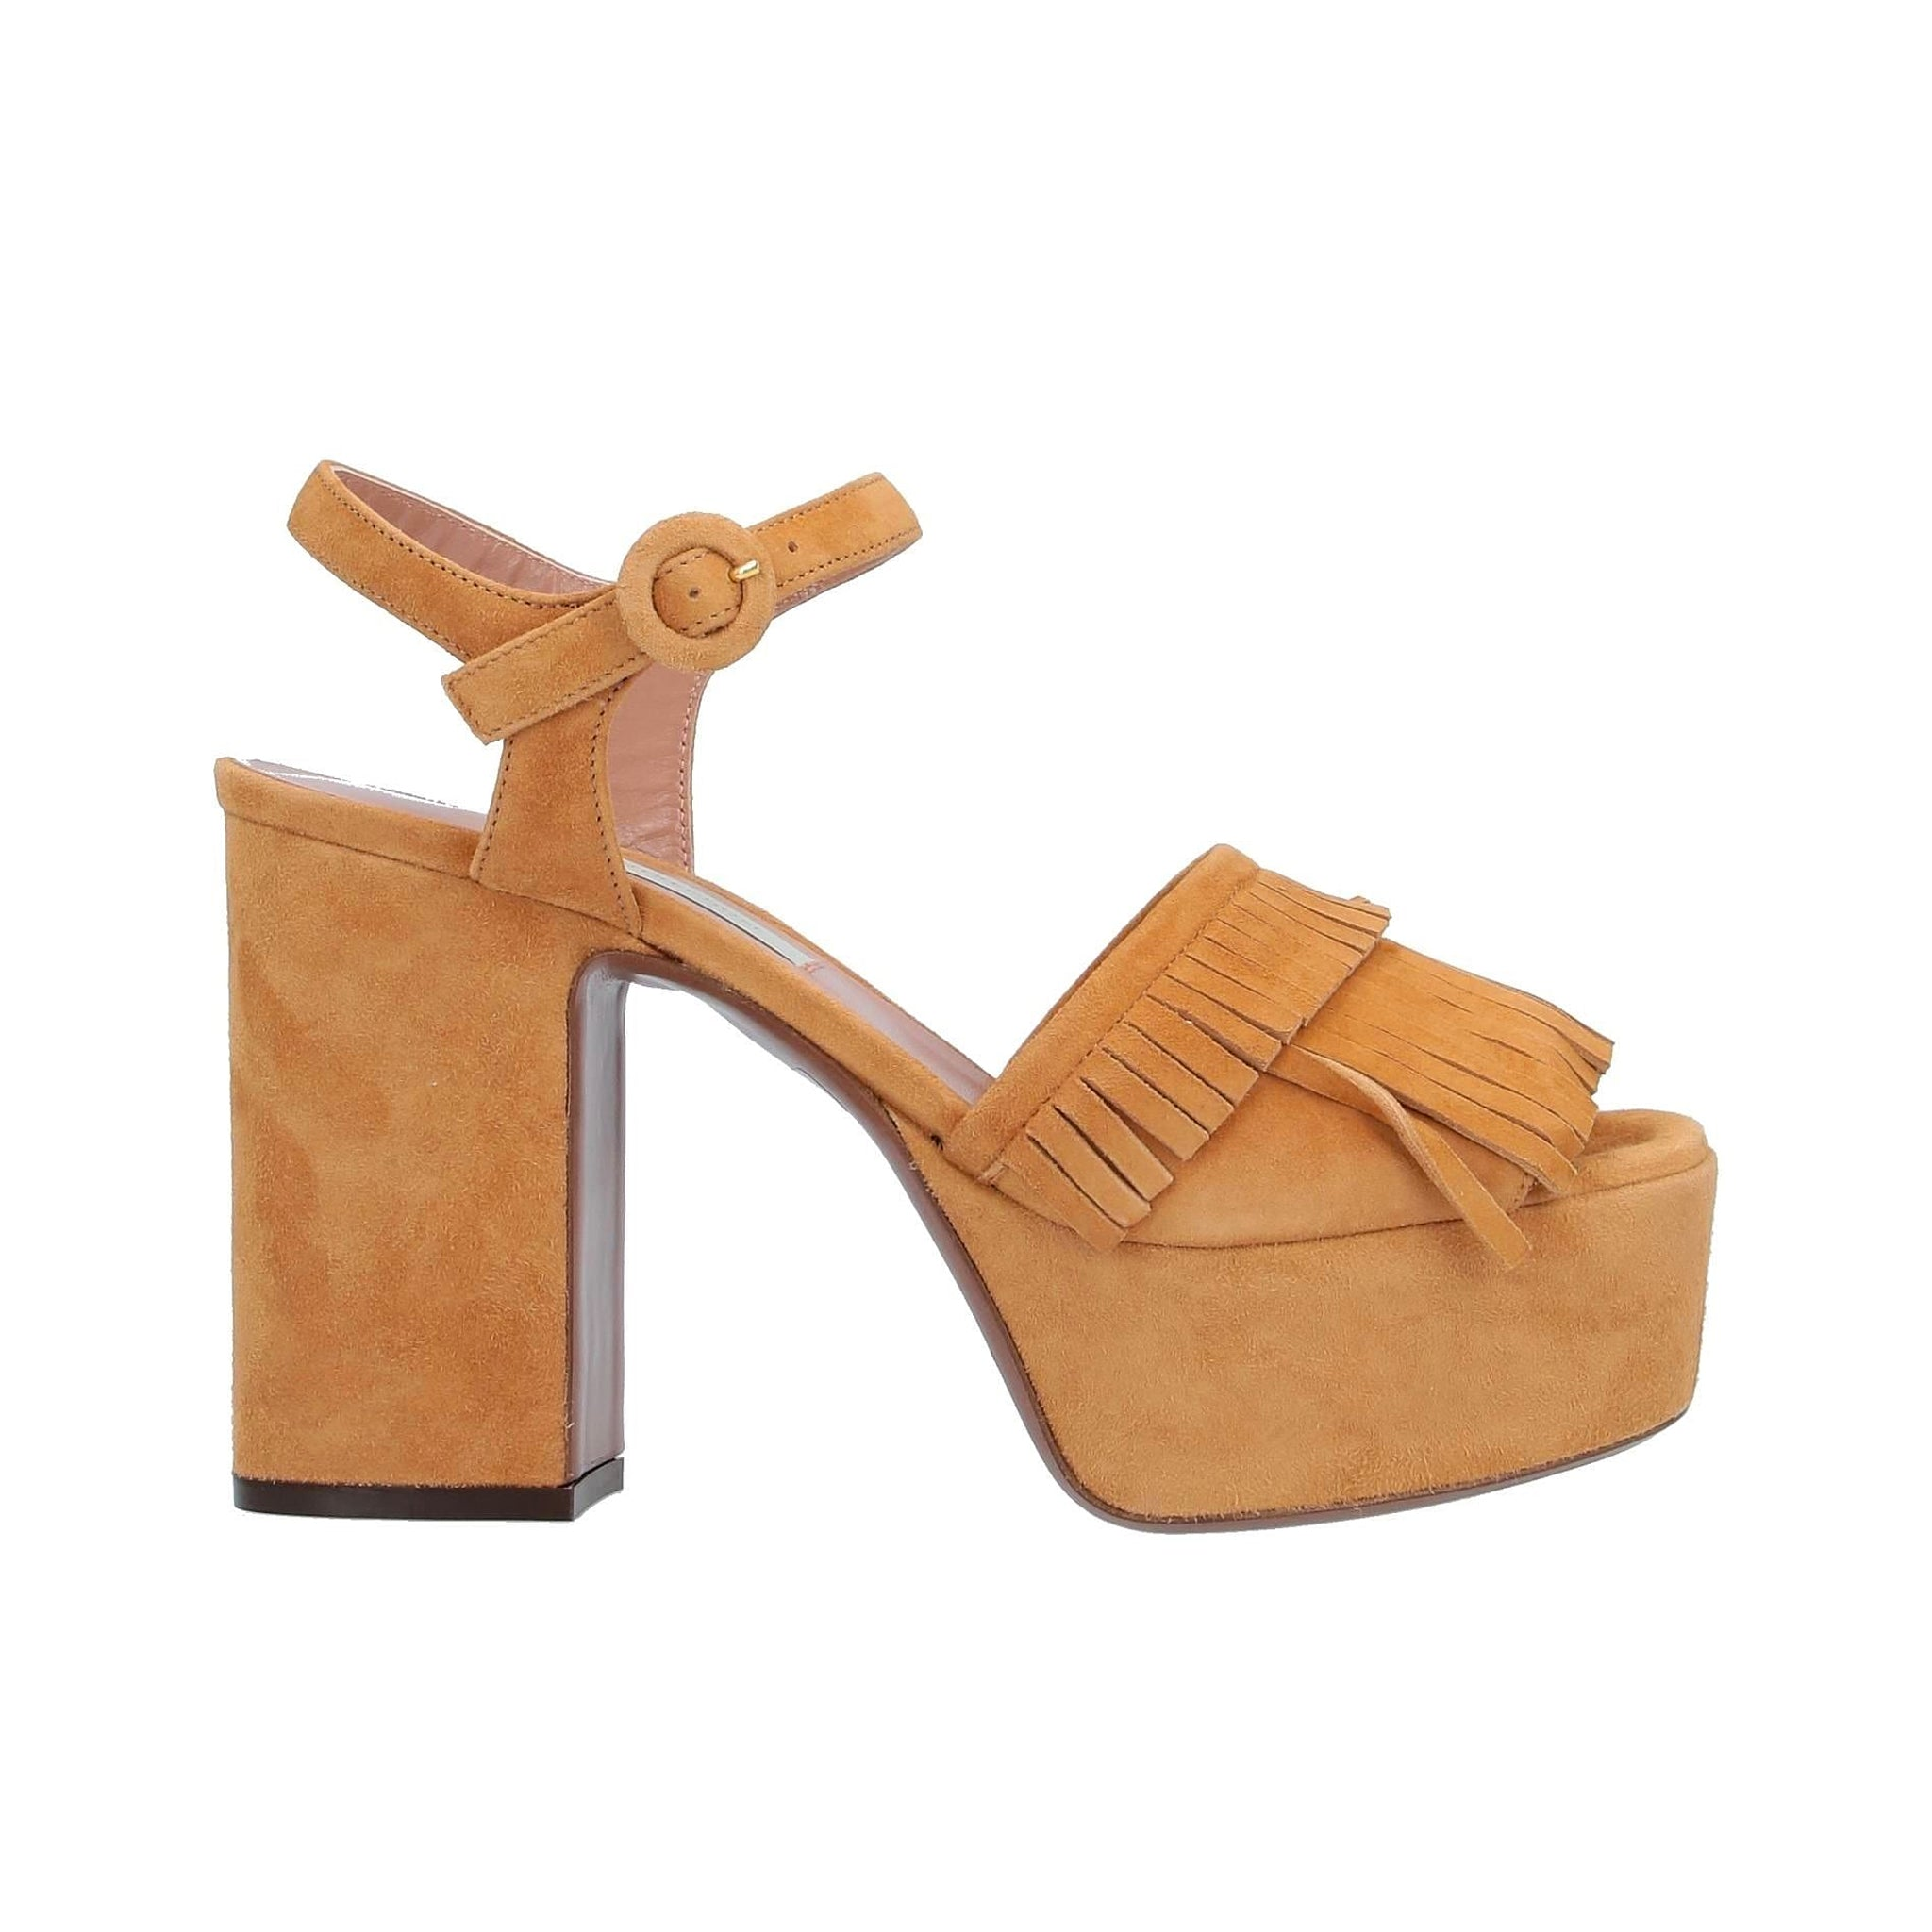 L'Autre Chose Suede Fringed Heel Sandals